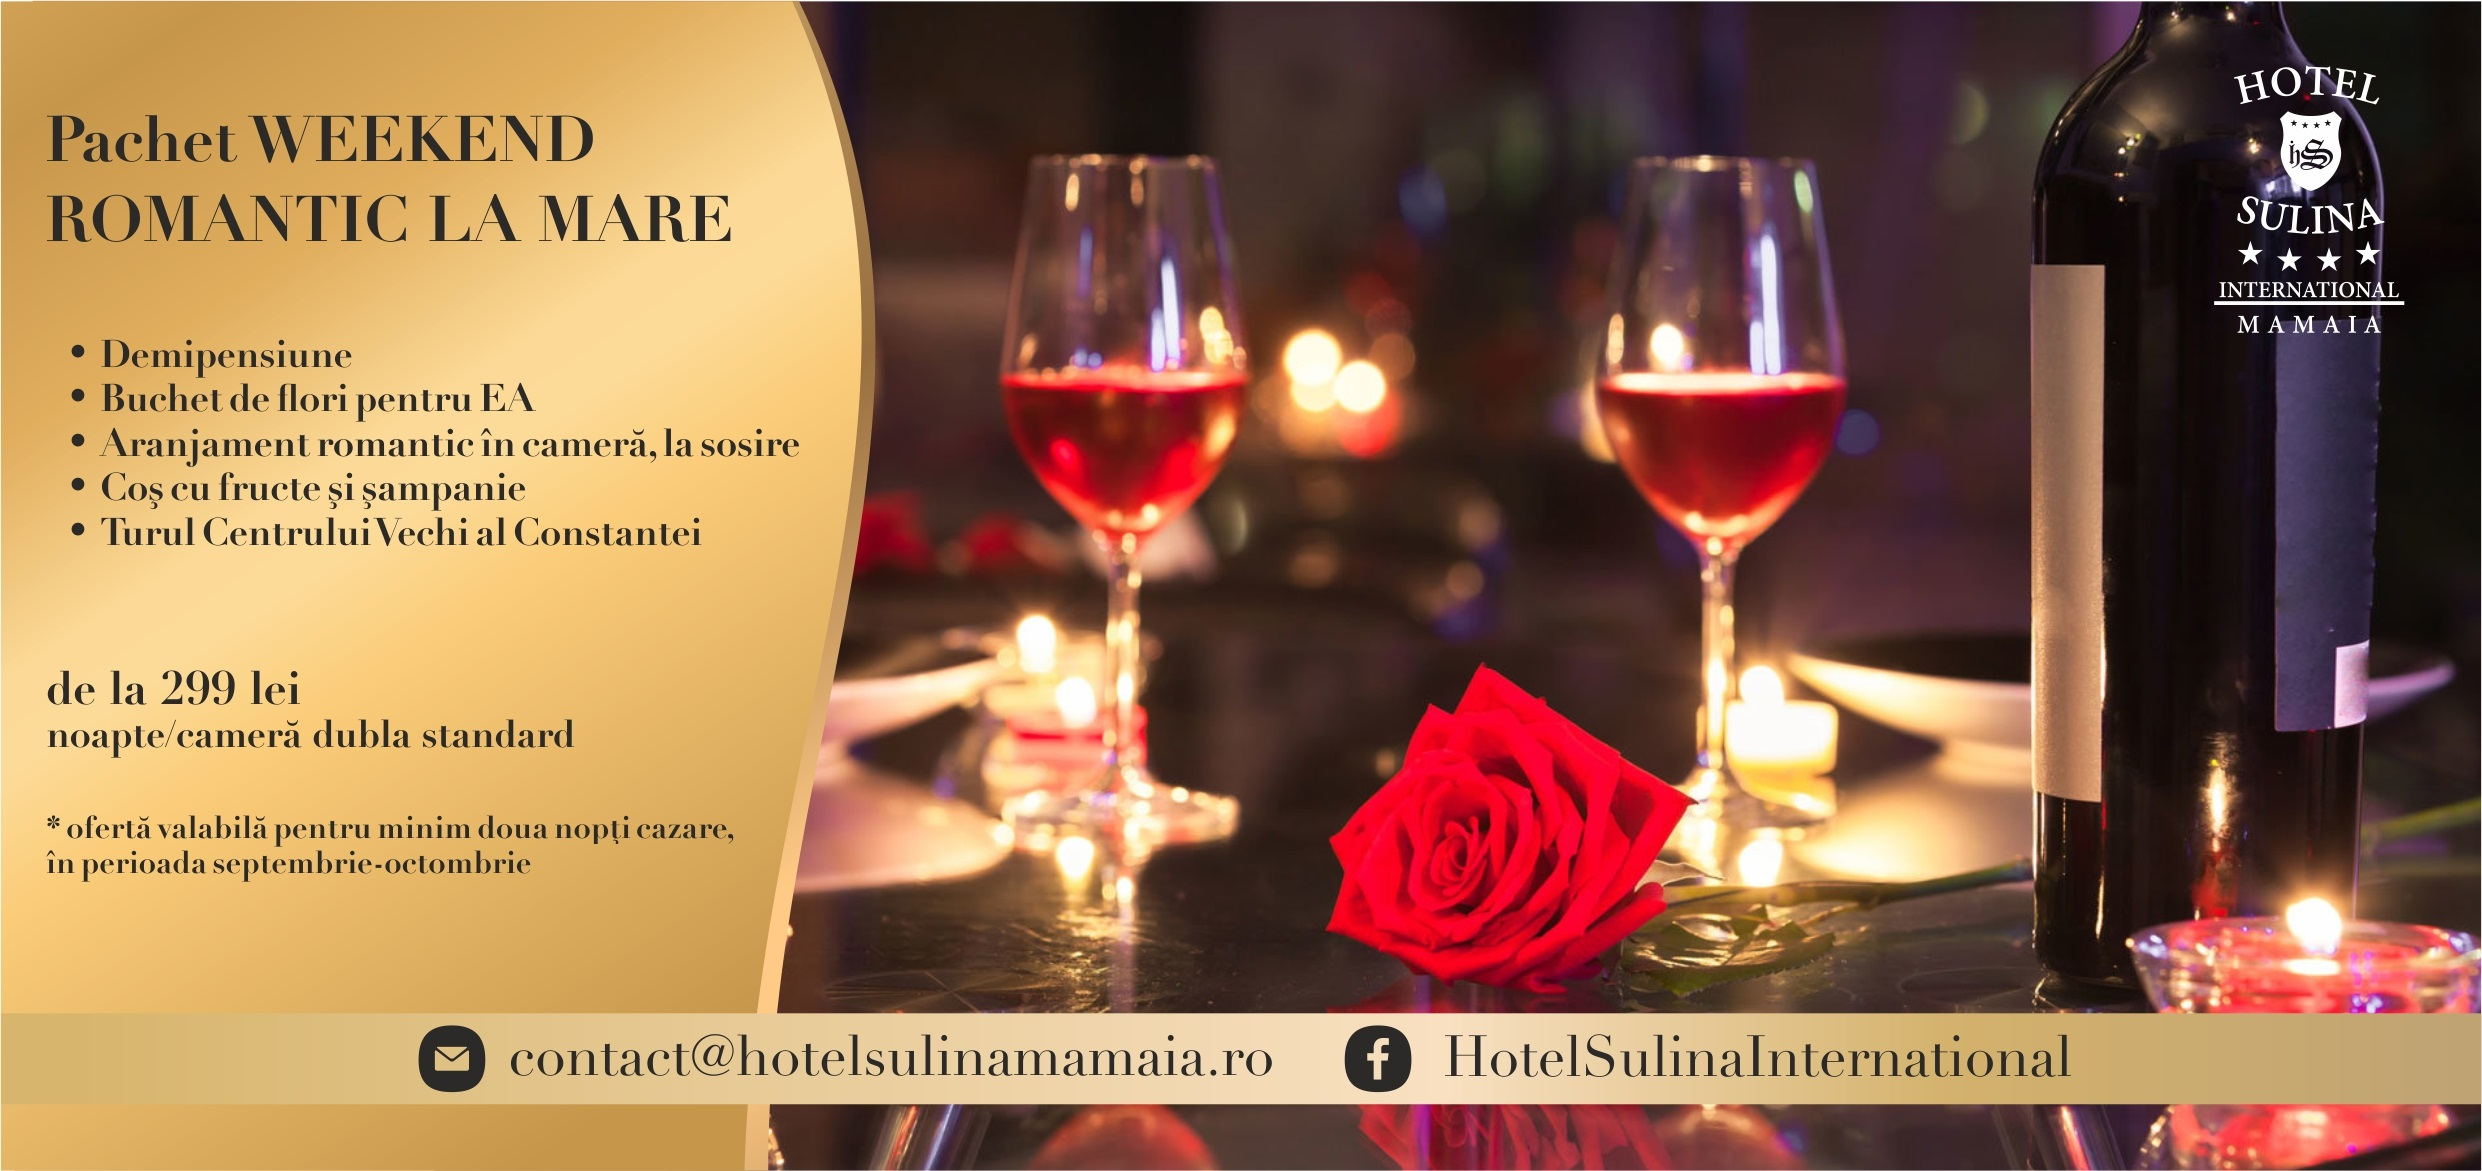 Pachet WEEKEND ROMANTIC Hotel Sulina International - Mamaia